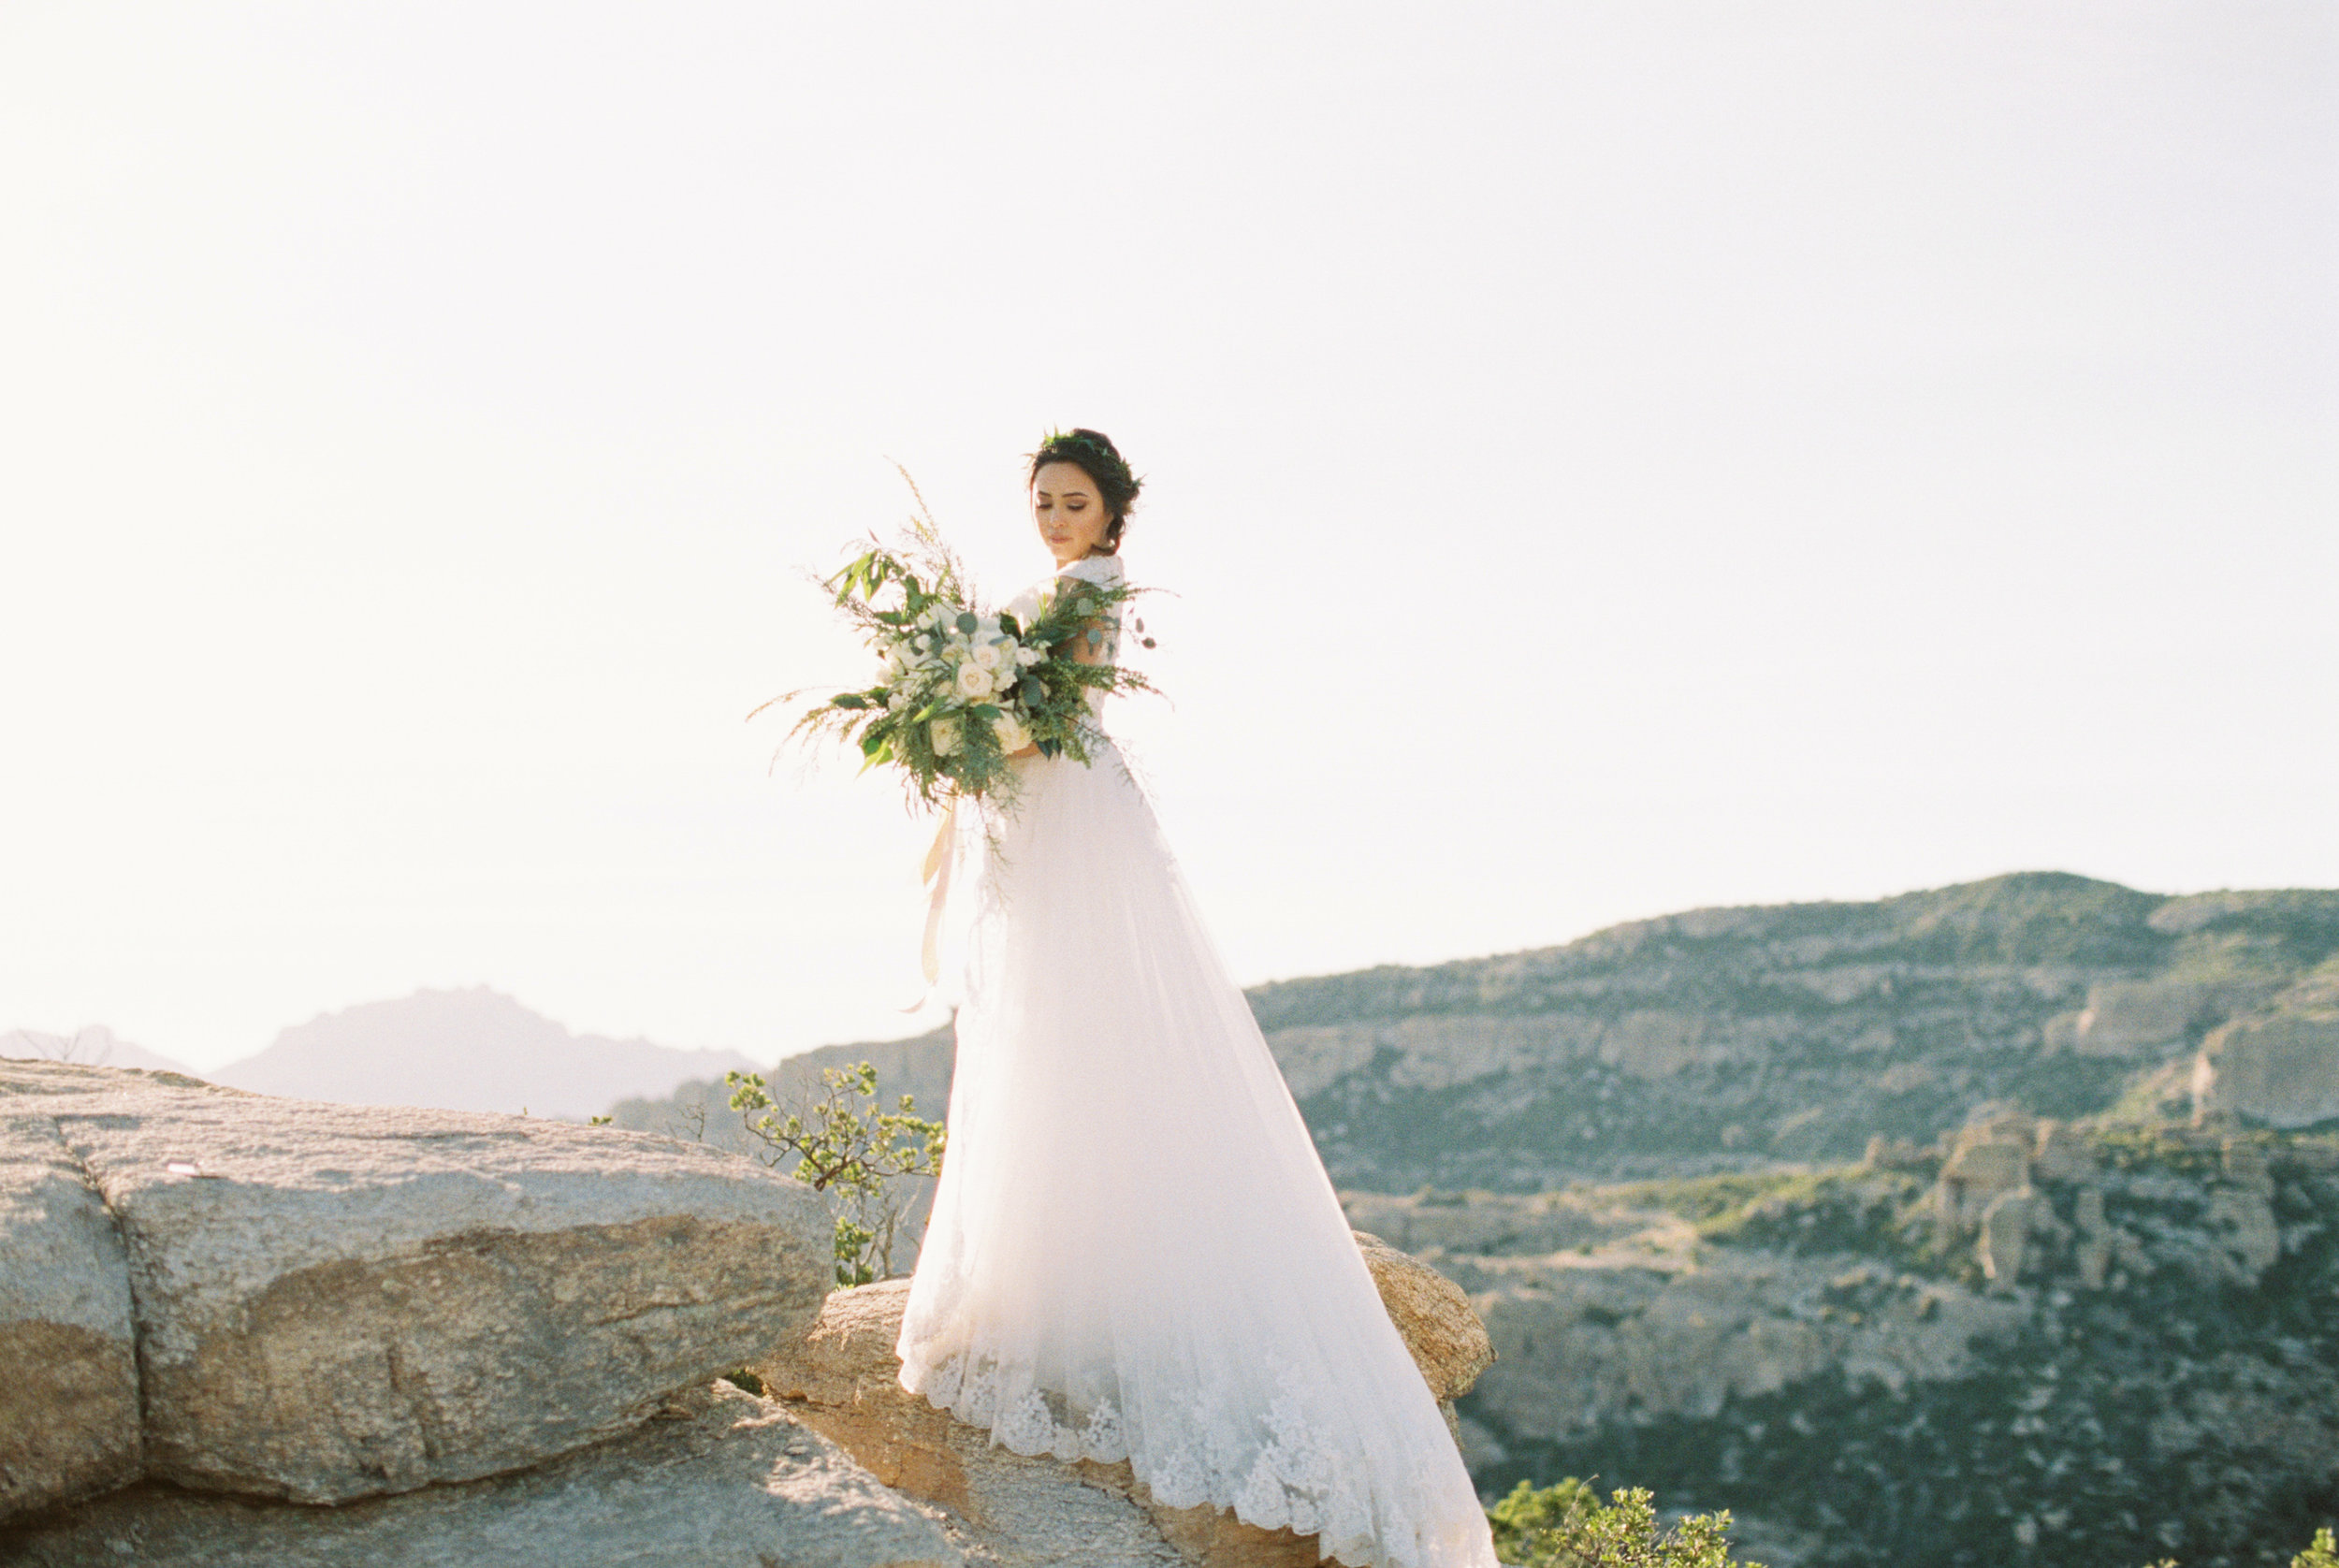 mount-lemmon-wedding-photographer-brealyn-nenes